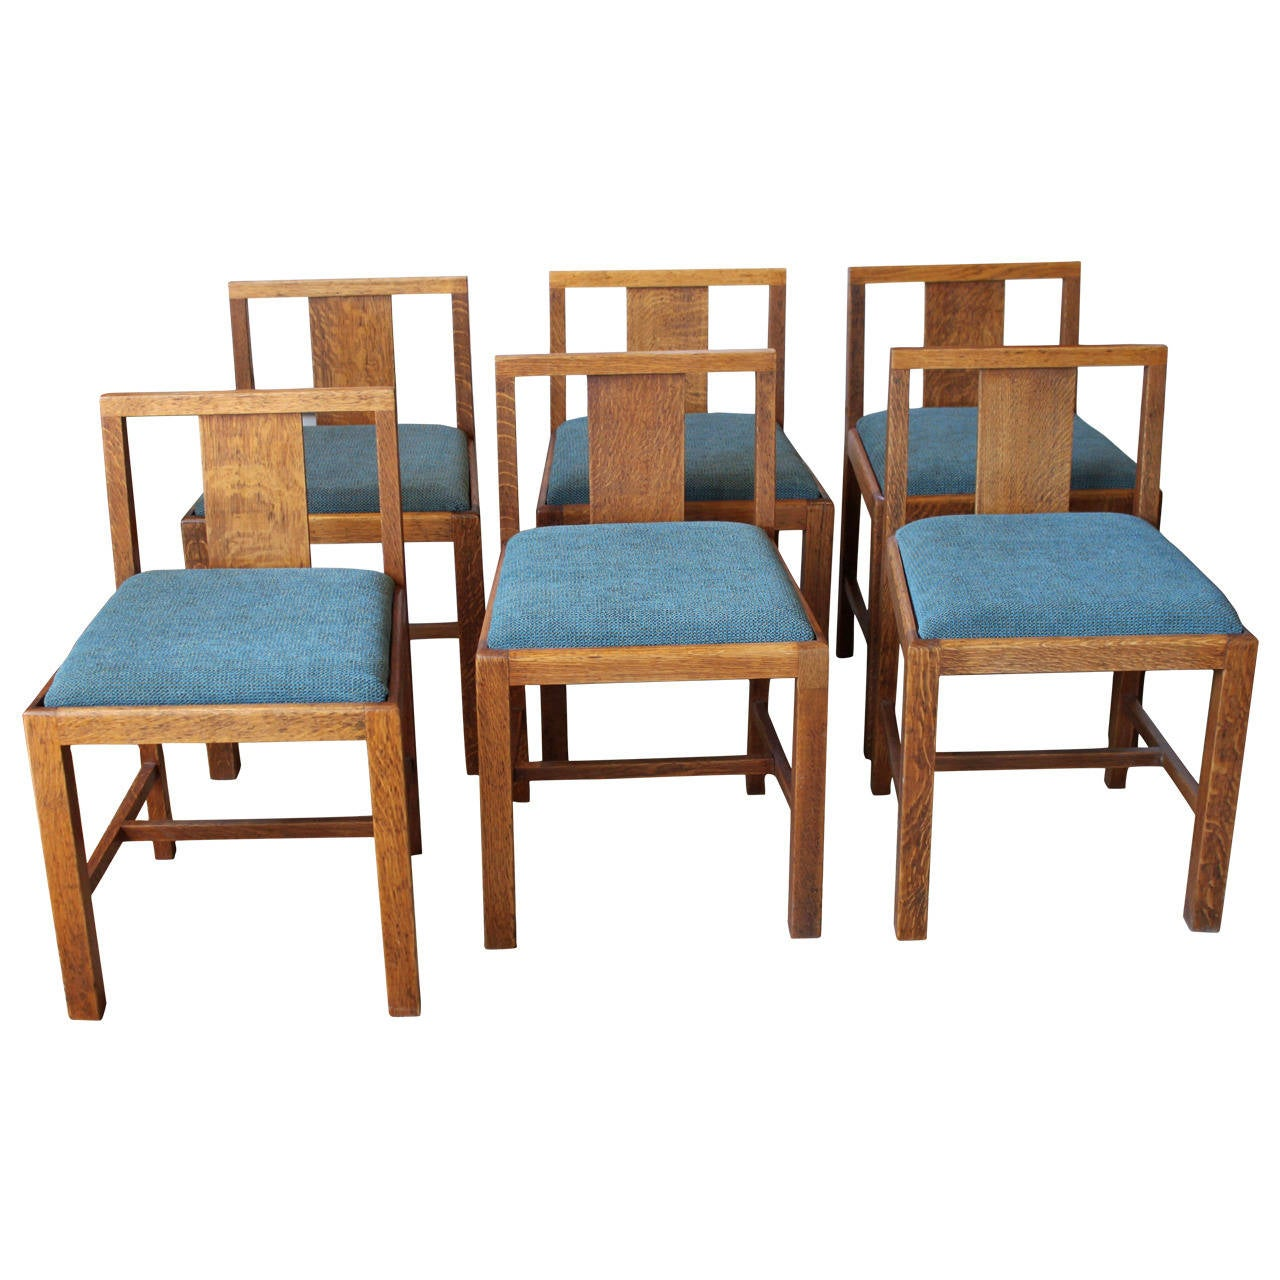 Early English Oak Chairs By Heals London For Sale At 1stdibs